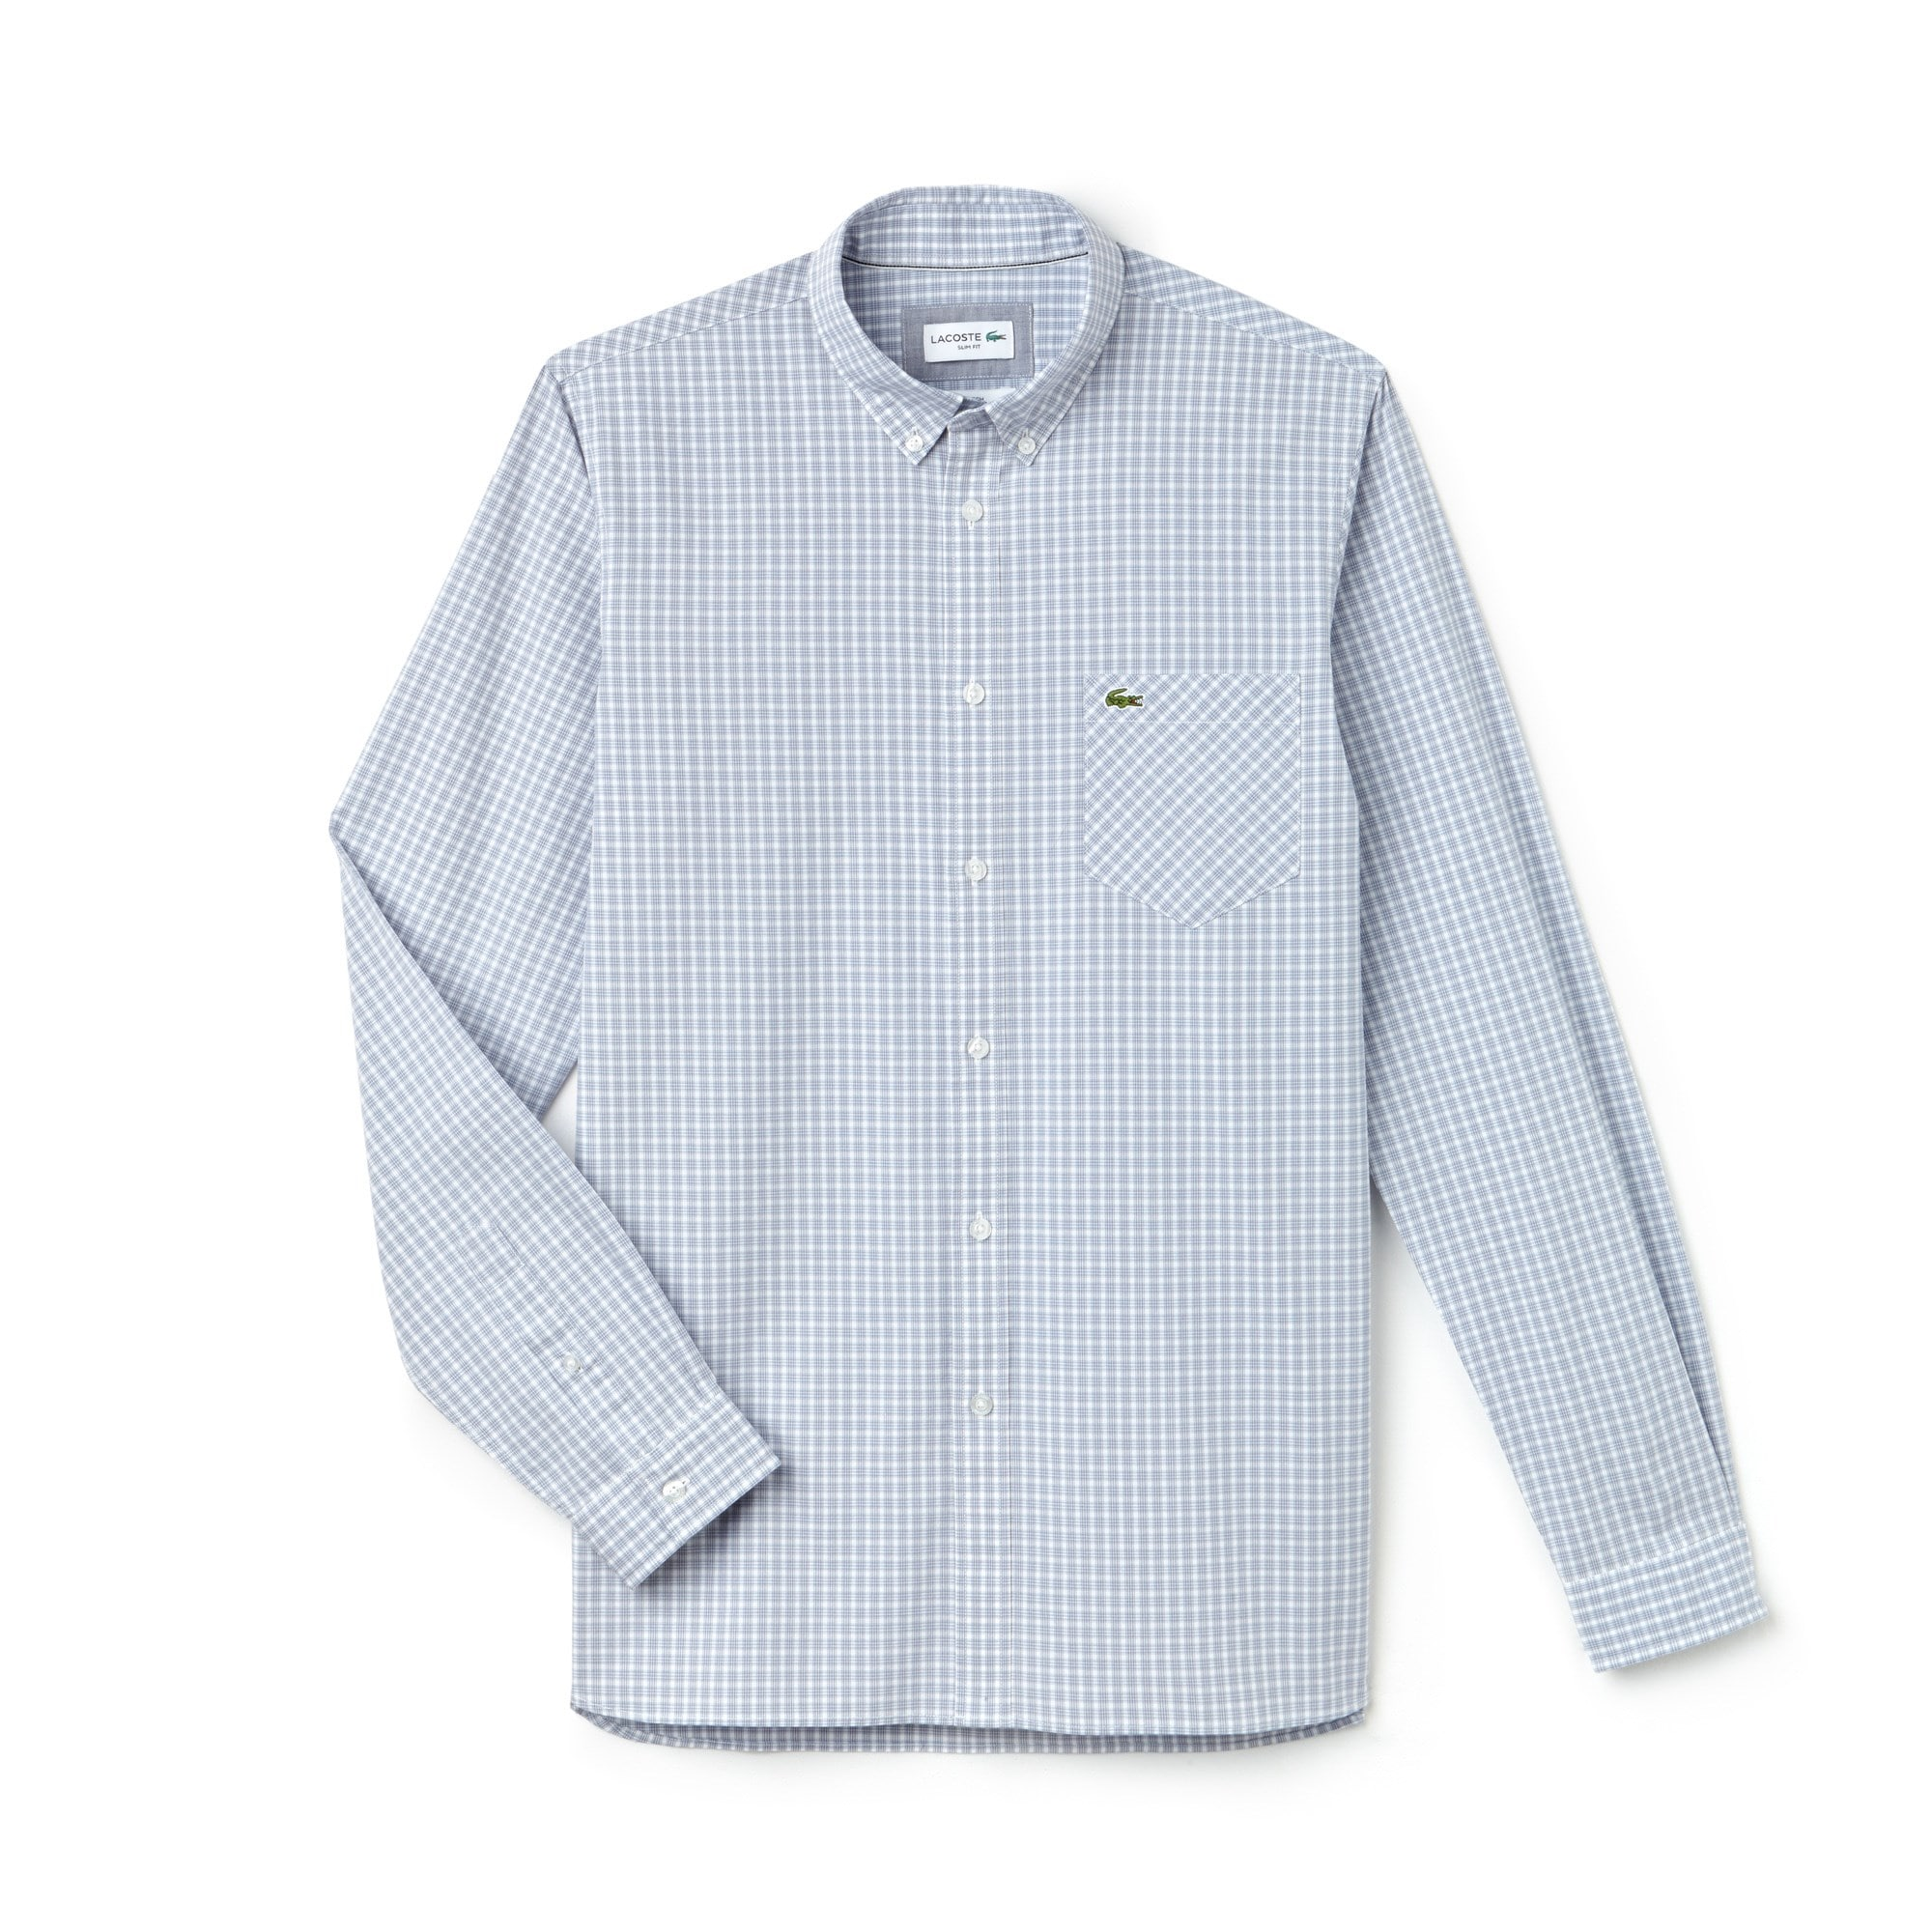 Men's Slim Fit Bicolour Check Stretch Cotton Poplin Shirt